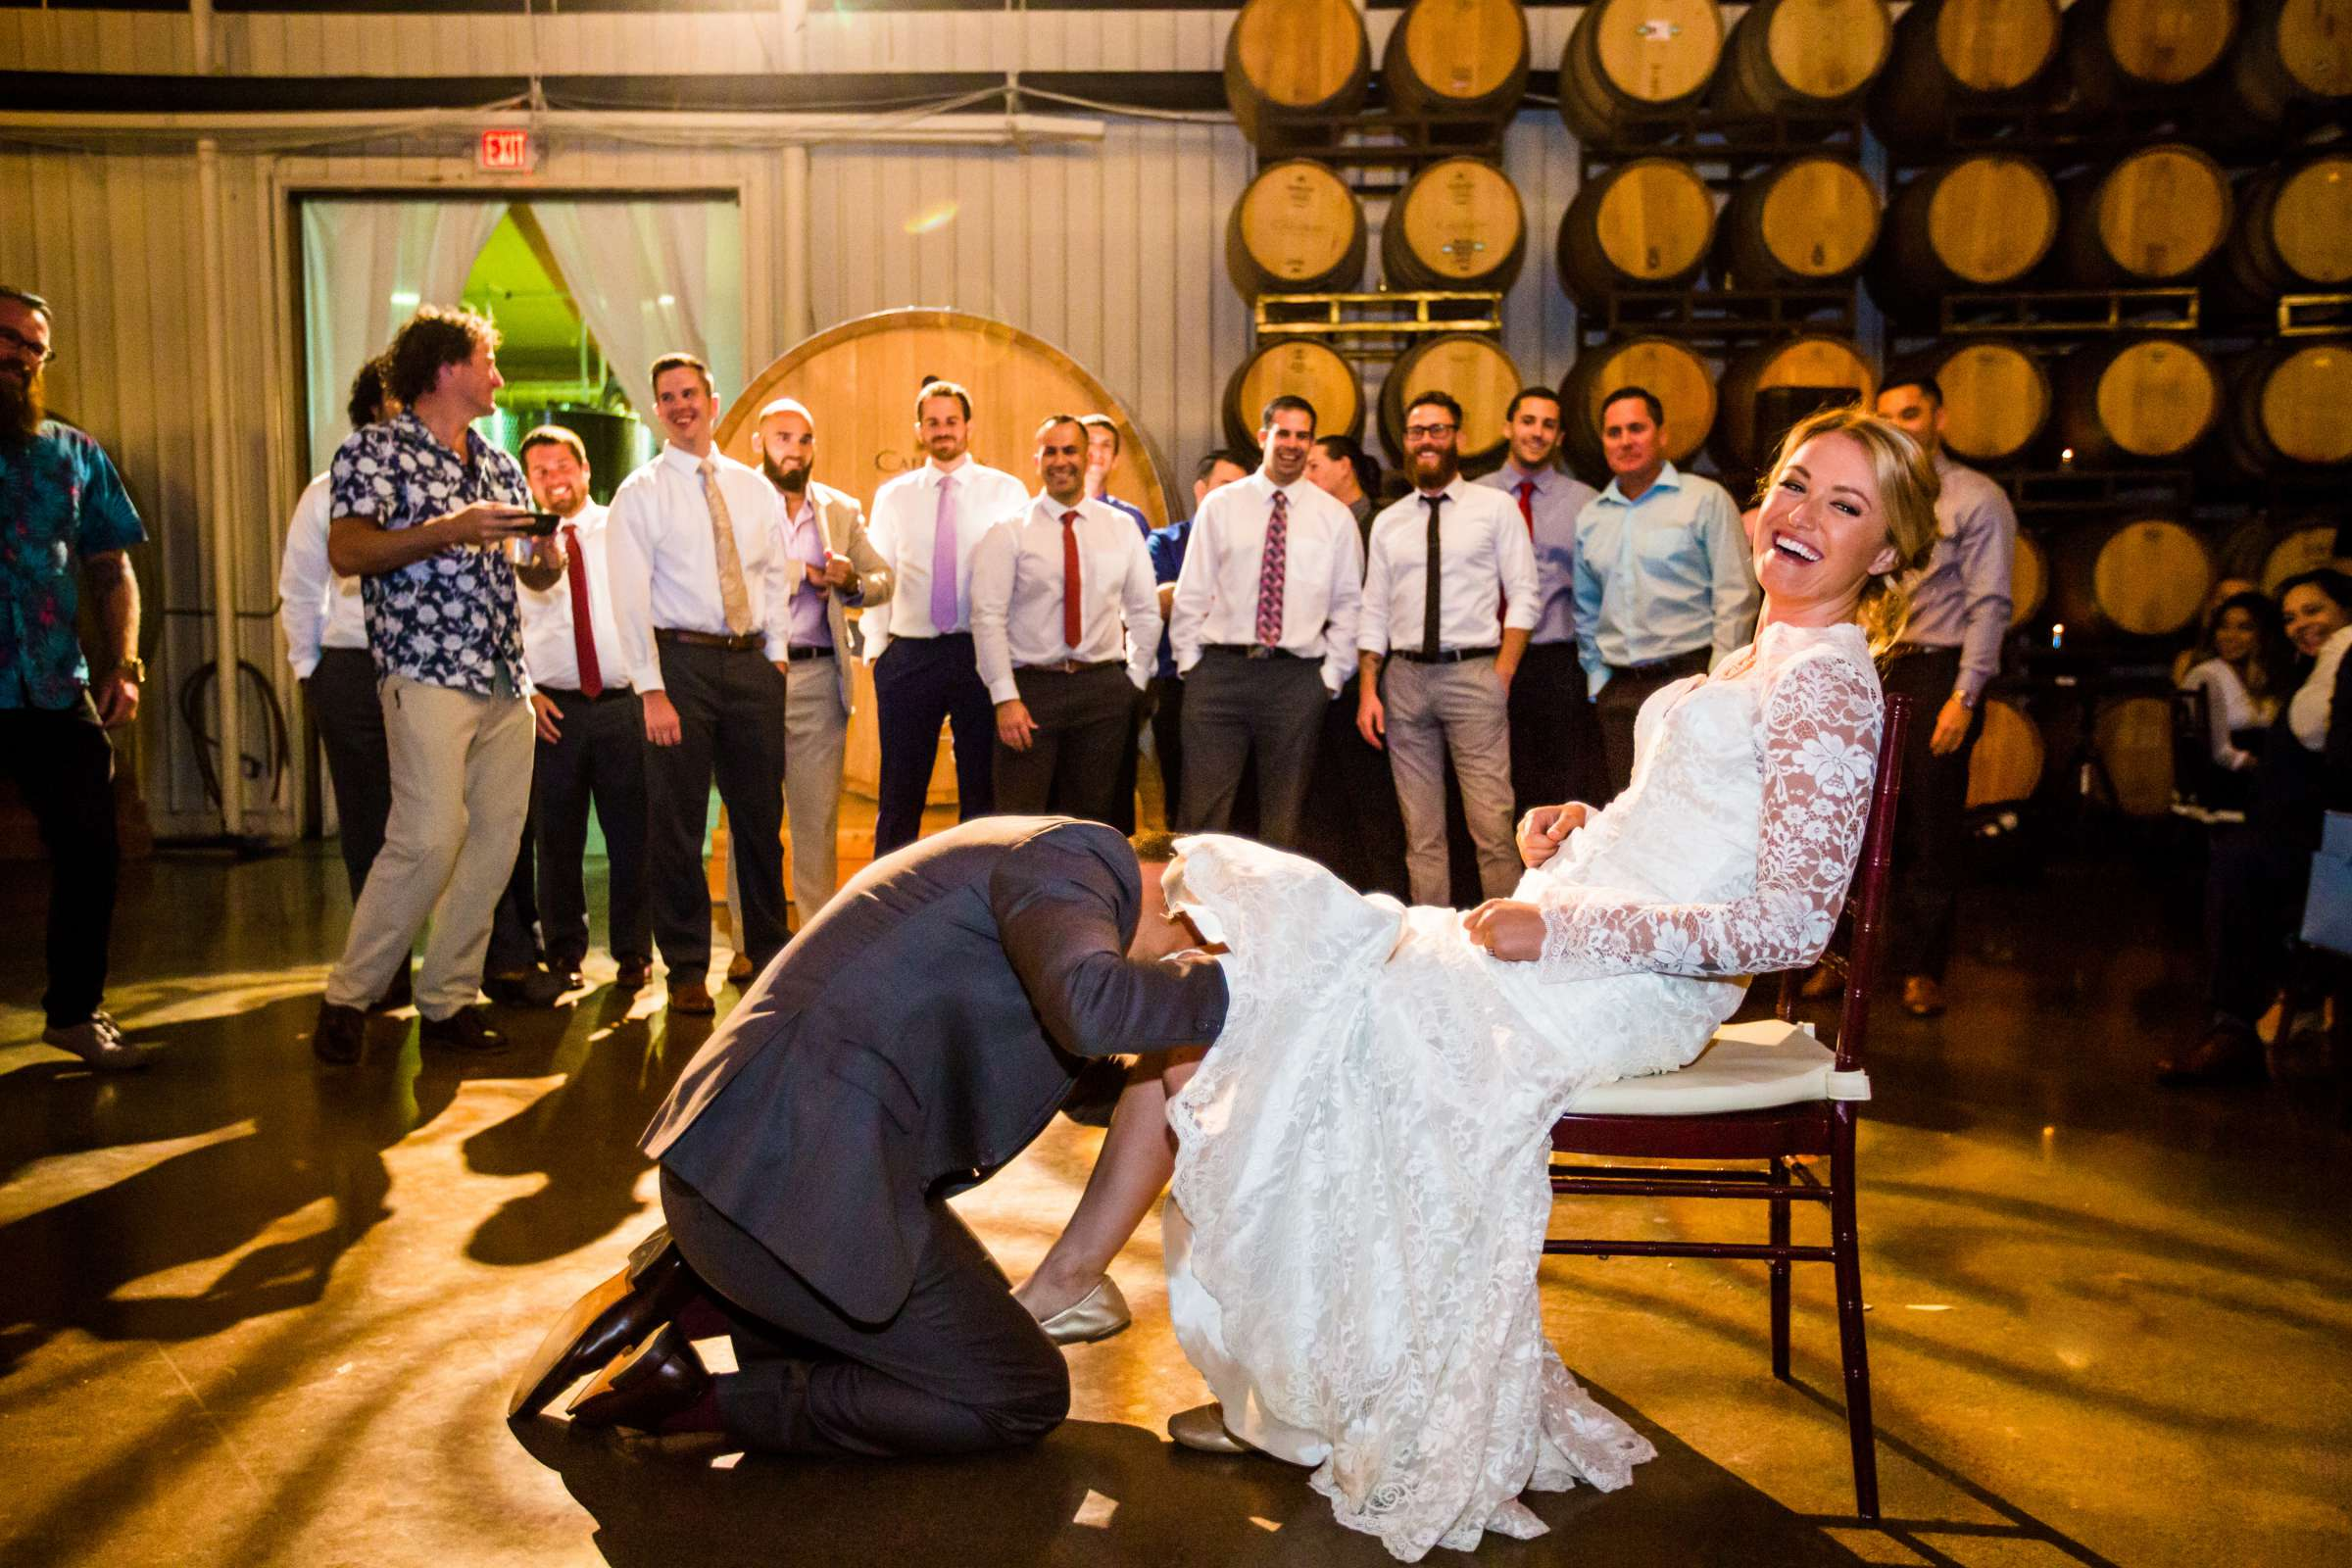 Bouquet and Garter Toss at Callaway Vineyards & Winery Wedding, Ryann and Manuel Wedding Photo #278631 by True Photography